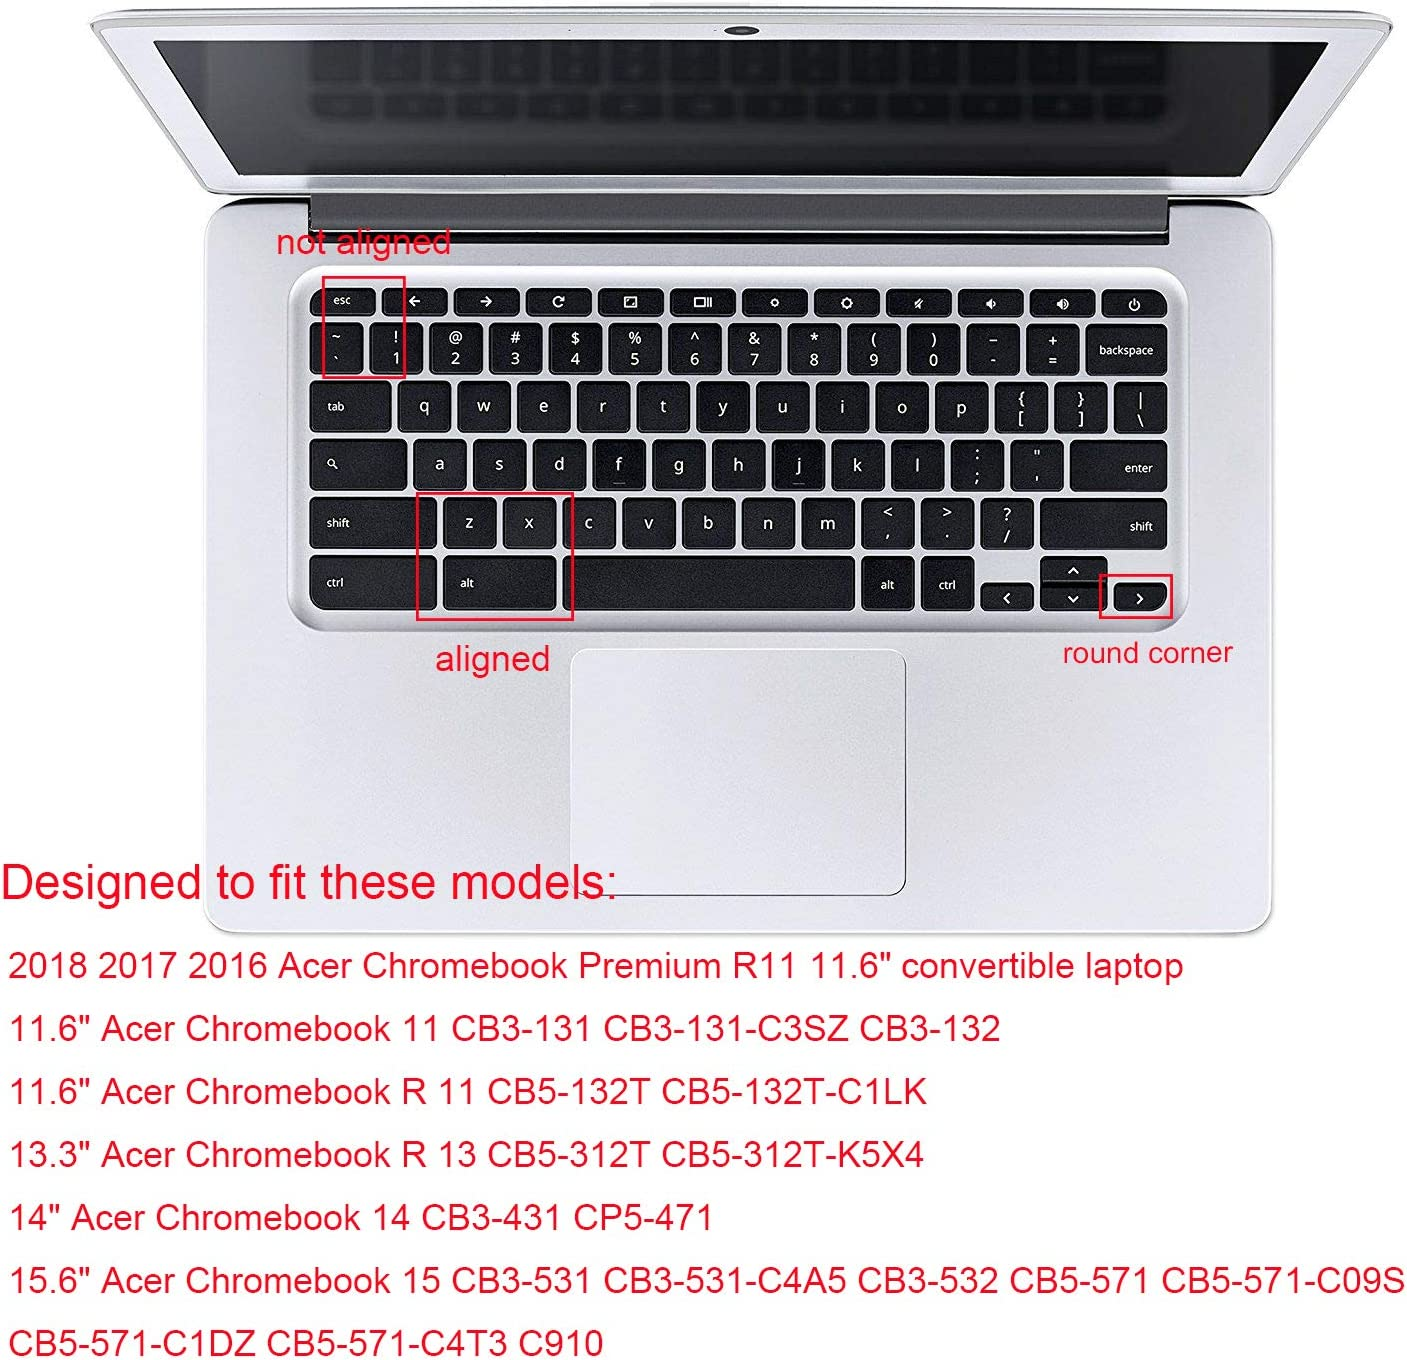 Acer Chromebook 15 CB3-531 Ombre Mint Acer Chromebook R 13 CB5-312T Keyboard Cover for Acer Chromebook Premium R11 11.6 Convertible CB5-132T CB3-132 CB3-131 Acer Chromebook 14 CB3-431 CP5-471